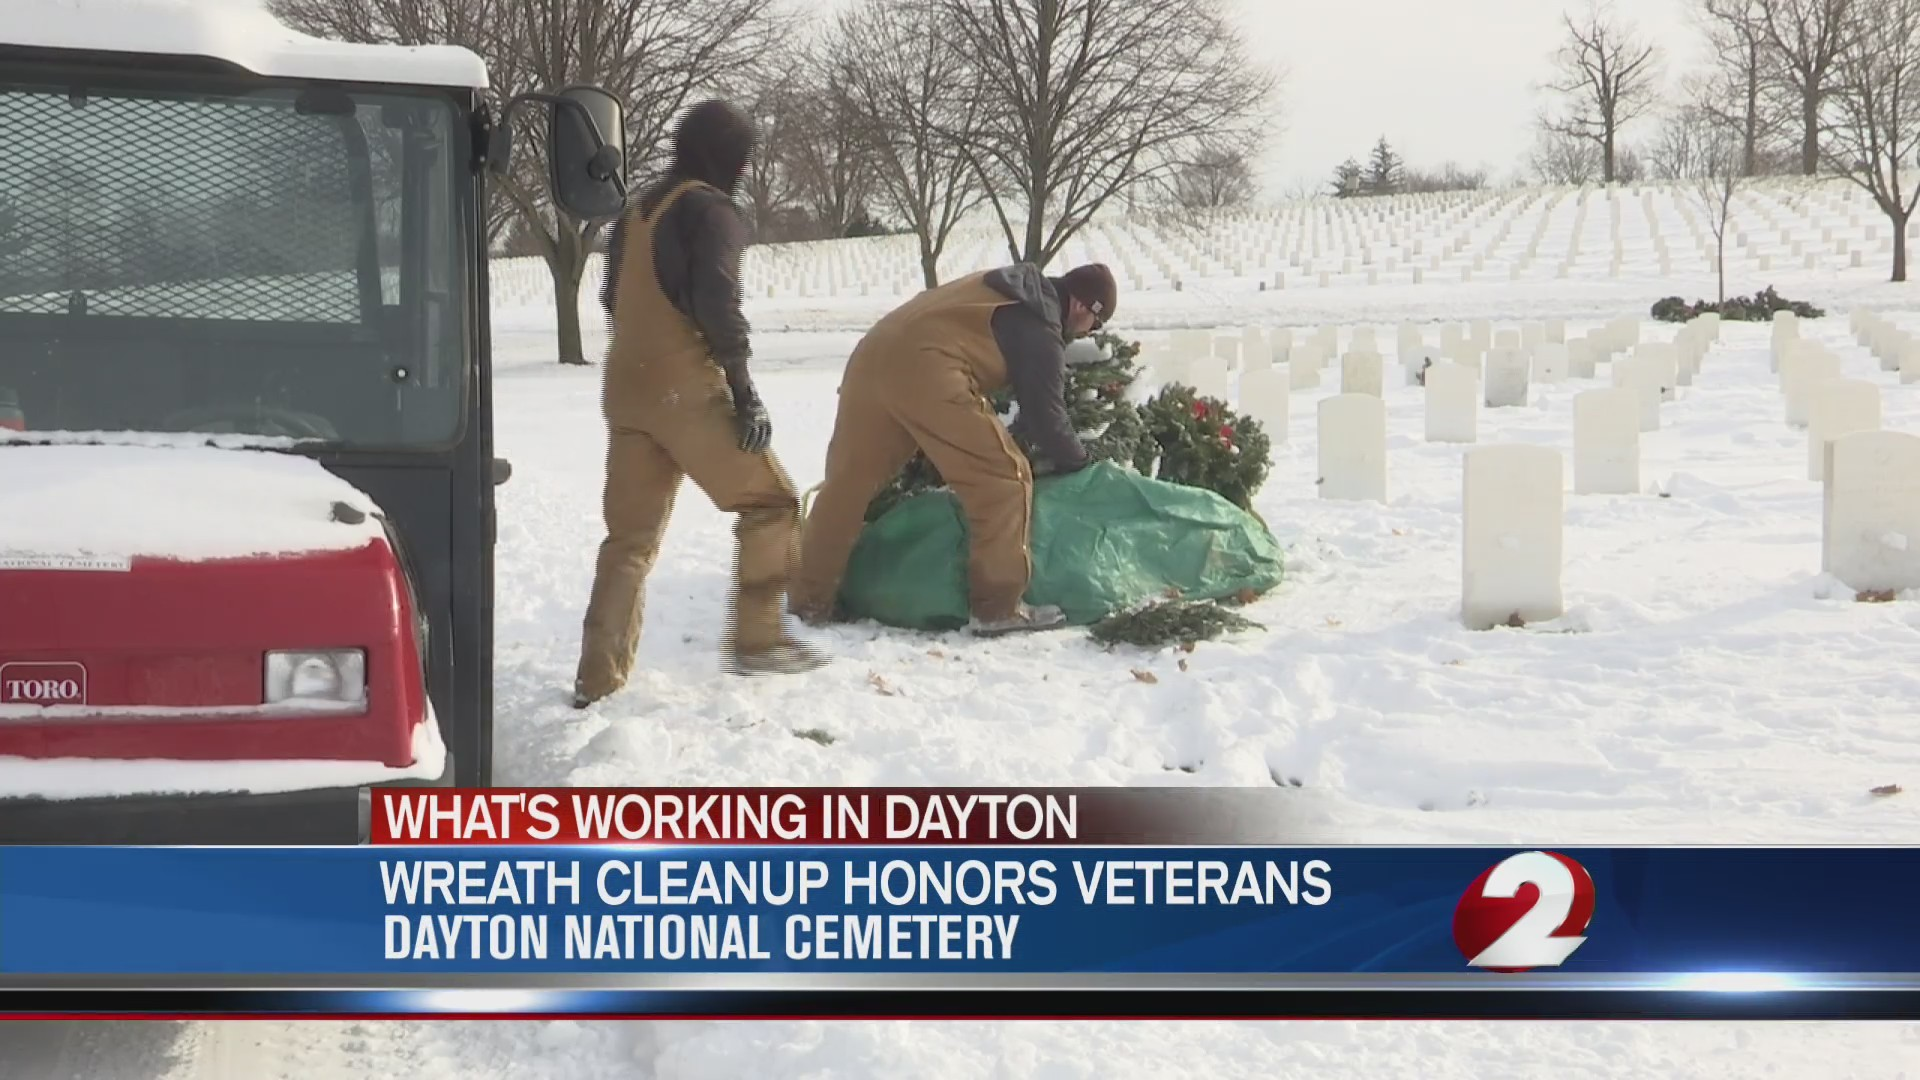 Wreath cleanup honors veterans